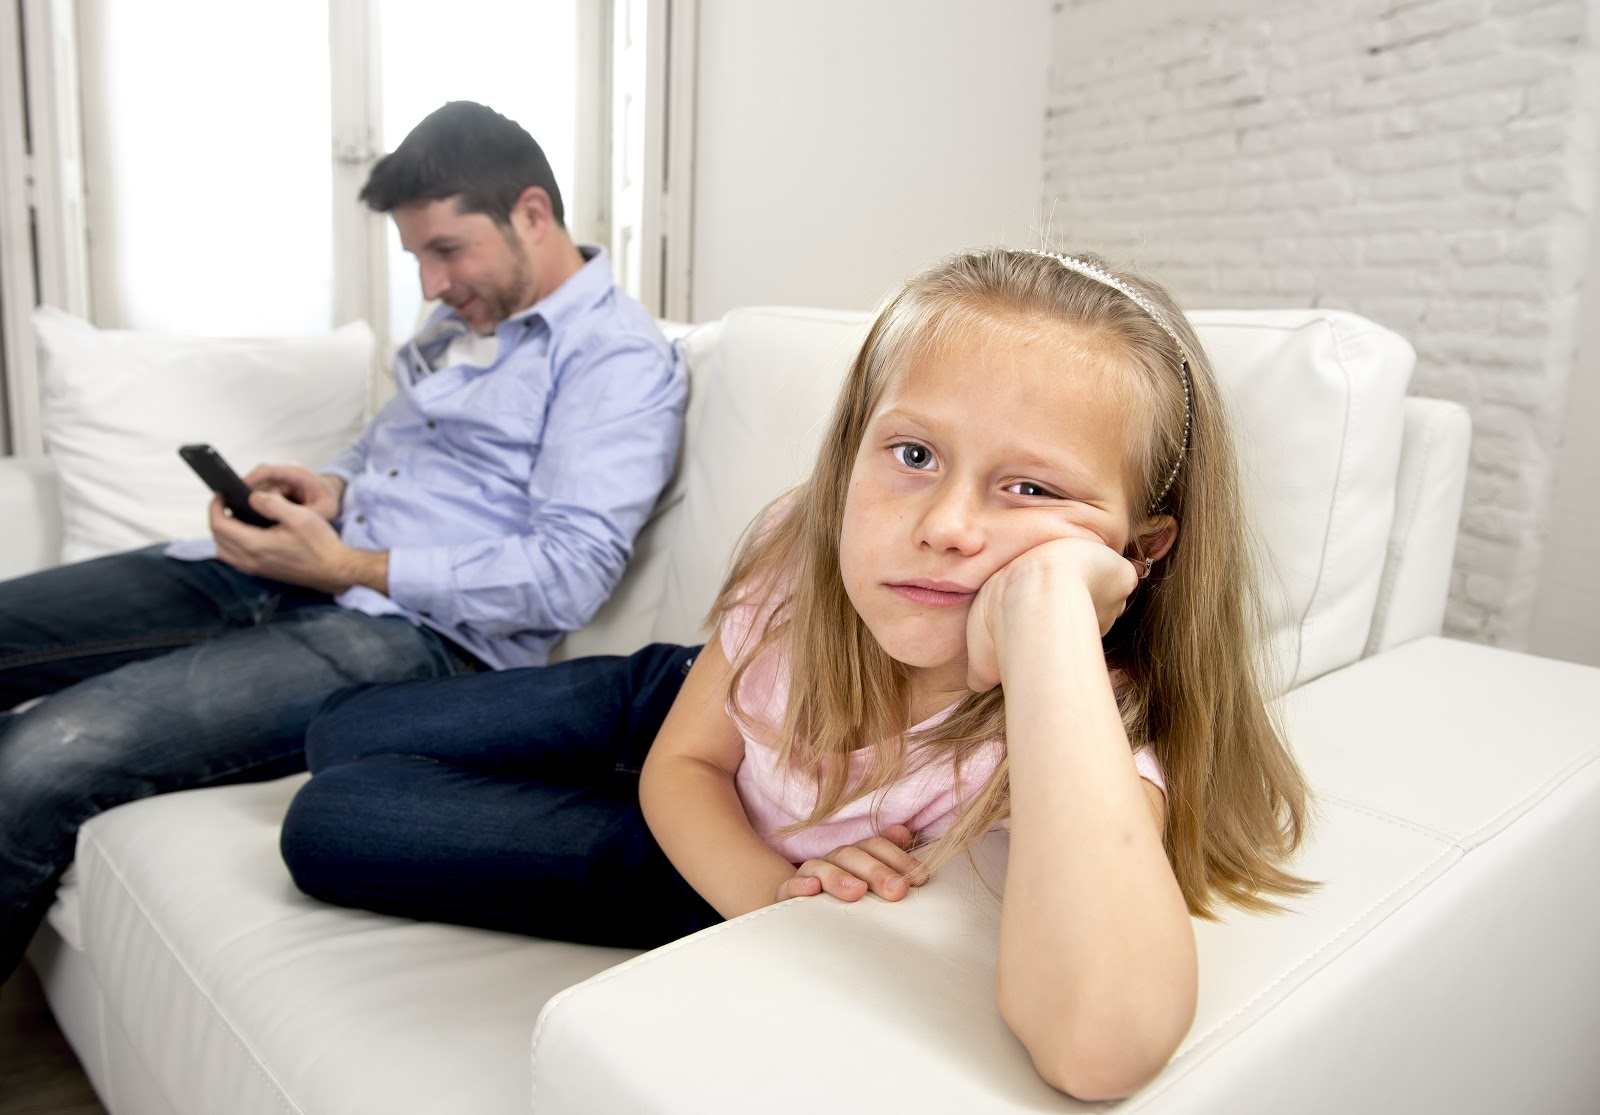 A young girl looking at the camera bored while her dad looks at his cell phone